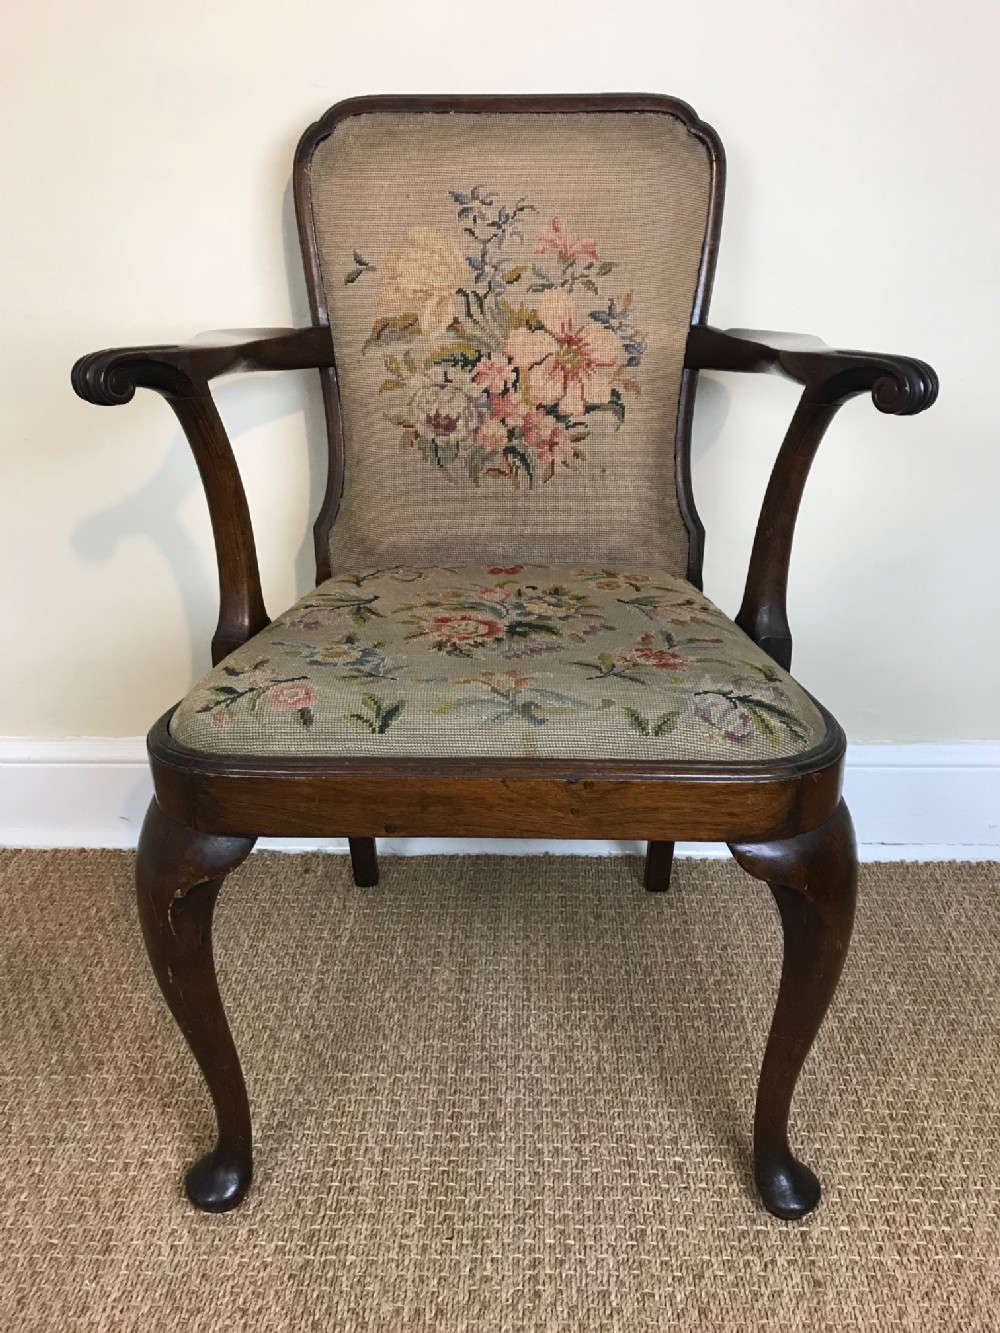 an edwardian mahogany armchair c 1910 in the early 18th century style by gillow